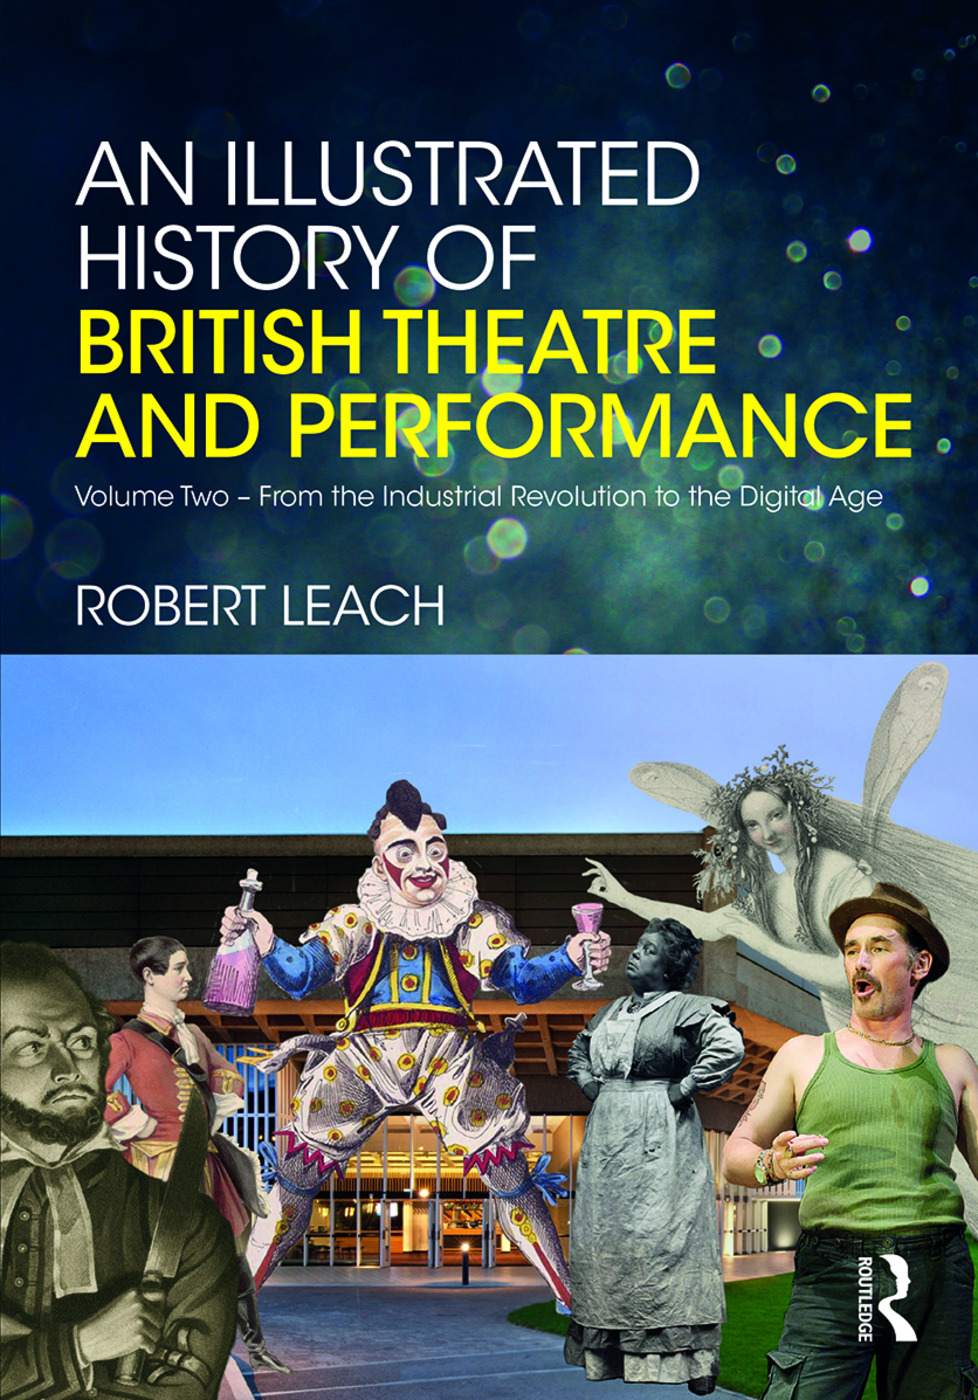 An Illustrated History of British Theatre and Performance: Volume Two - From the Industrial Revolution to the Digital Age book cover